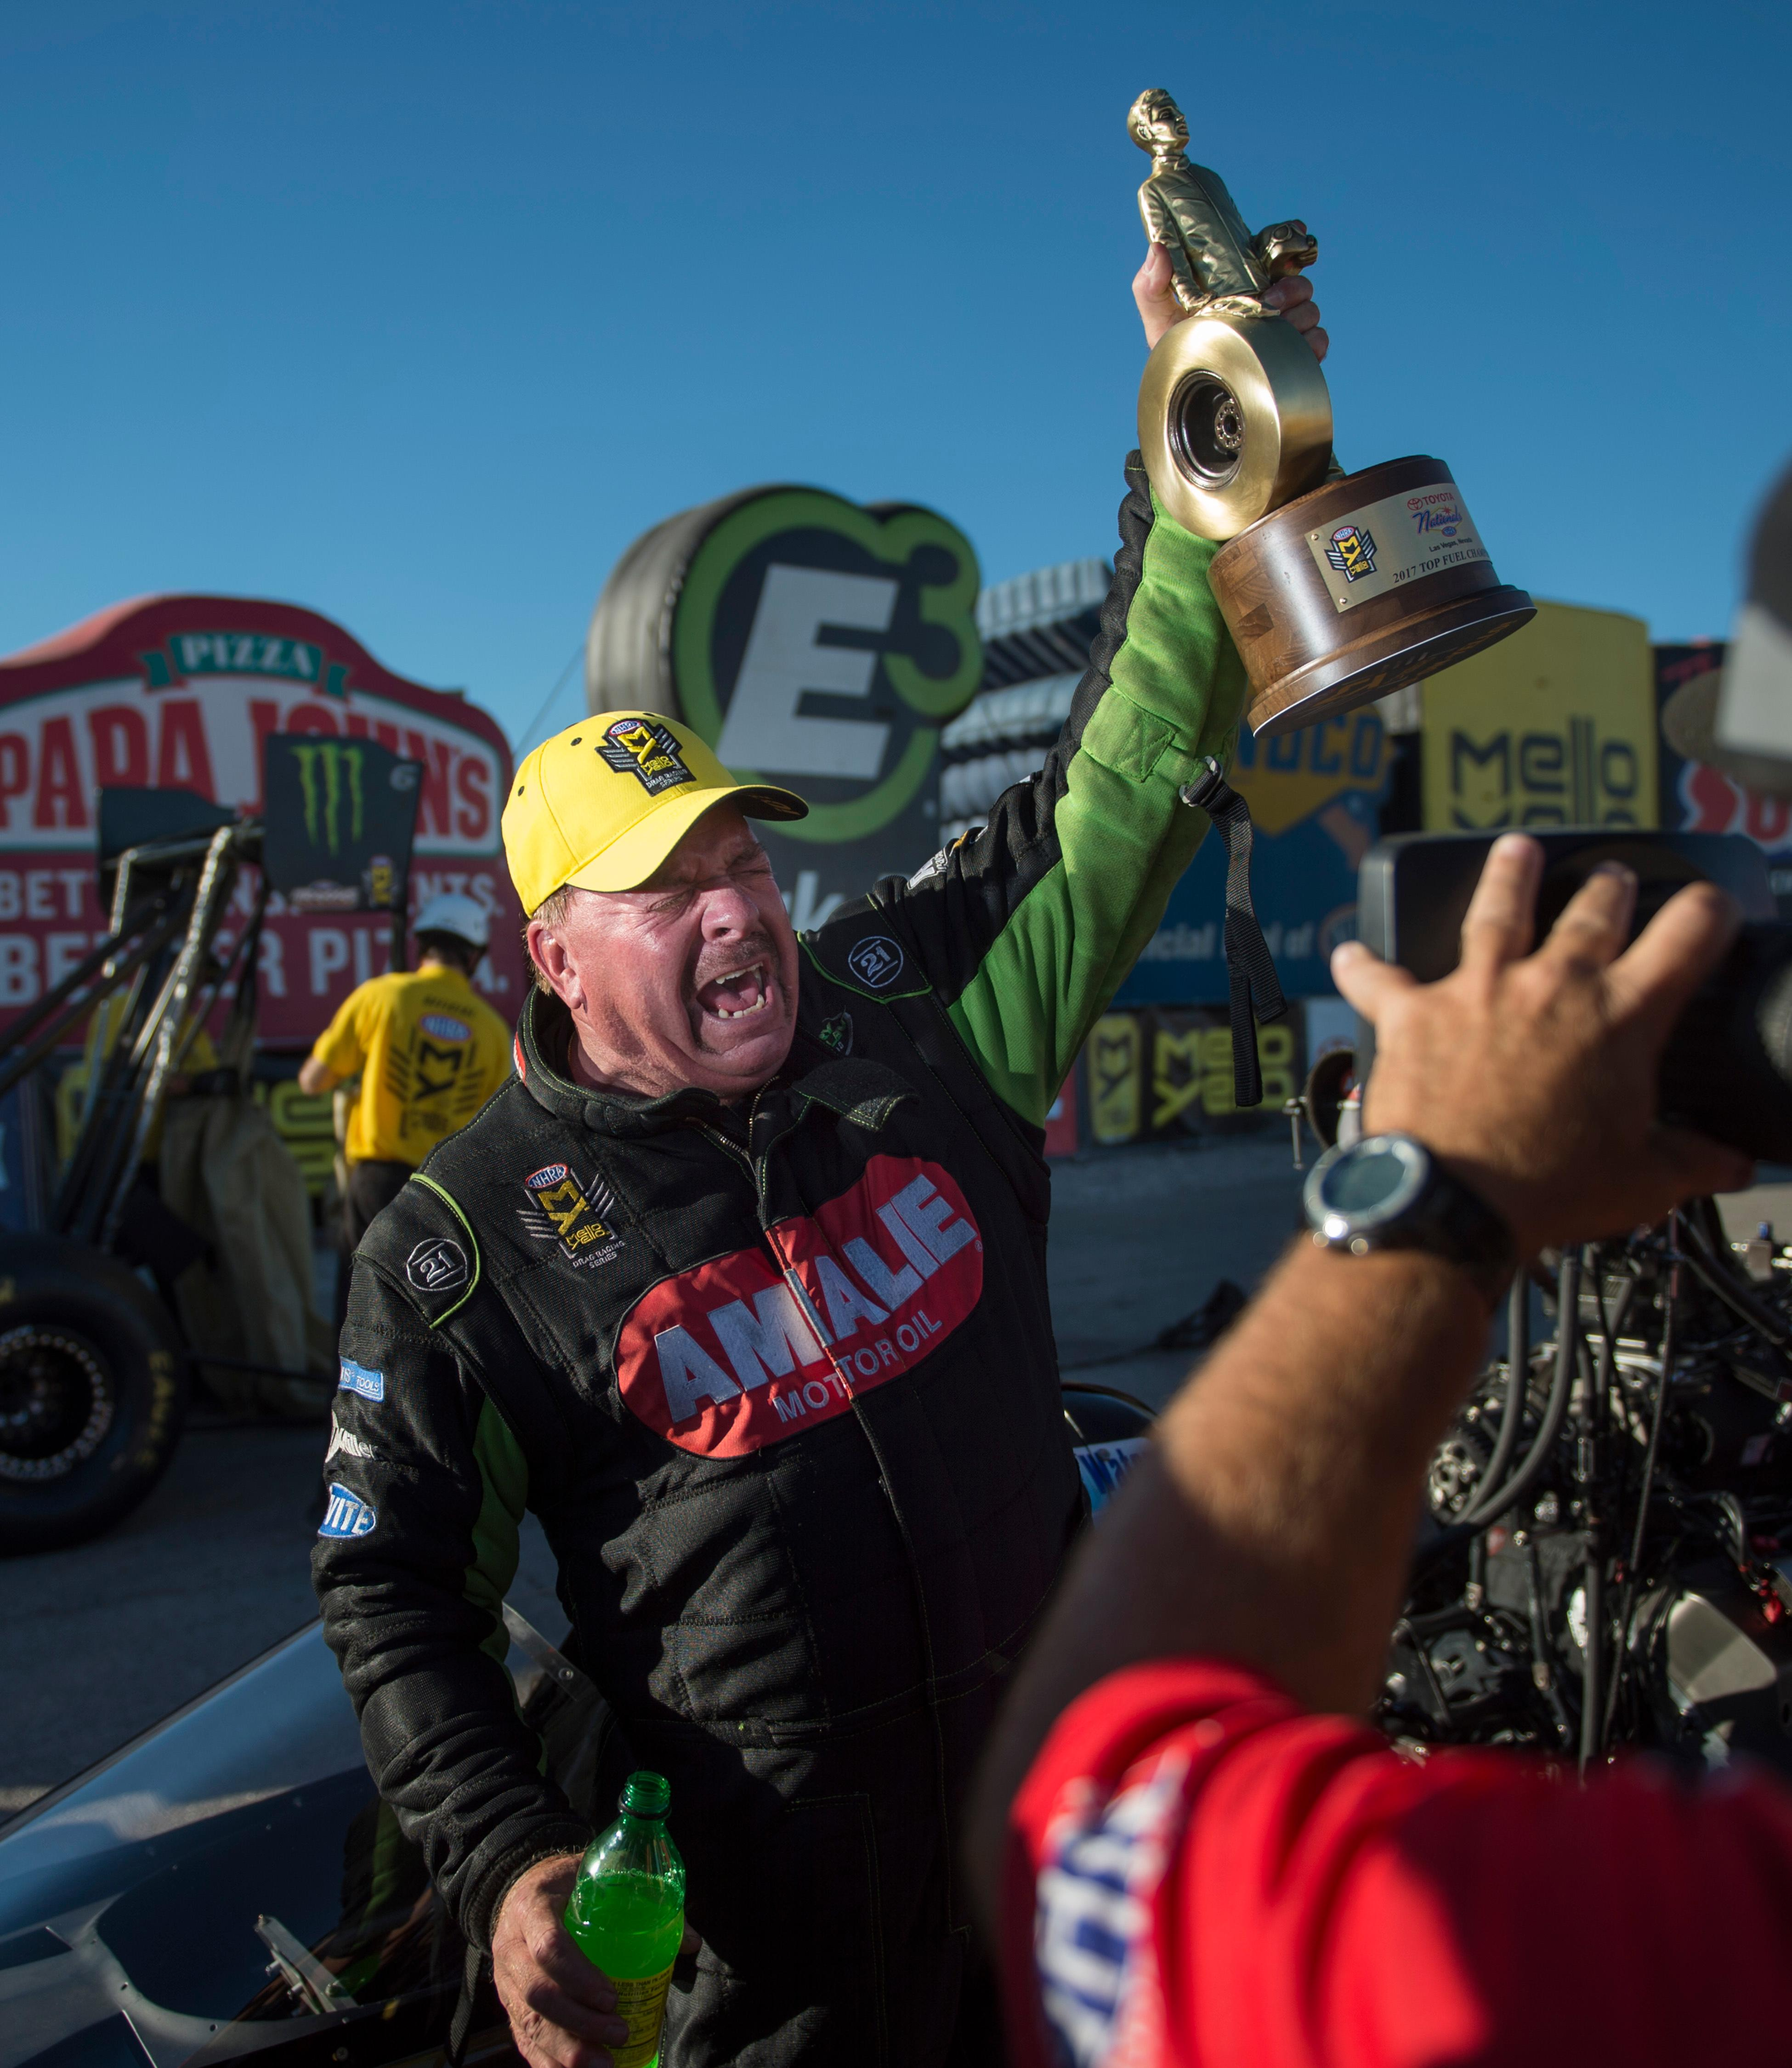 Top Fuel driver Terry McMillen celebrates his victory, his first ever in Top Fuel, at the NHRA Toyota Nationals Sunday, October 29, 2017, at The Strip at the Las Vegas Motor Speedway. CREDIT: Sam Morris/Las Vegas News Bureau